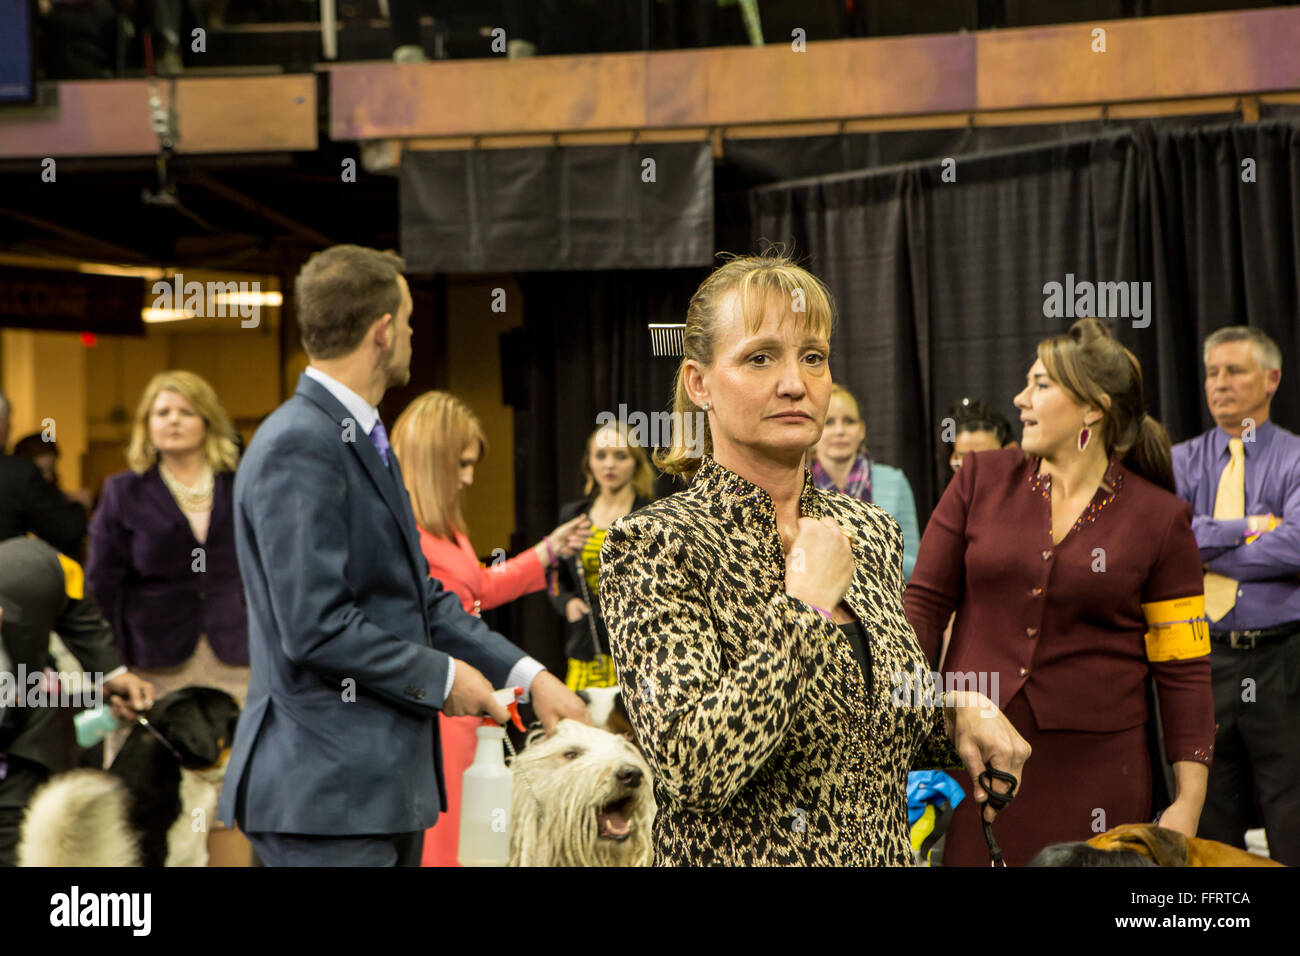 New York, USA. 16th February, 2016. A dog handler with a dog comb in her hair waits to enter the ring with her dog Stock Photo